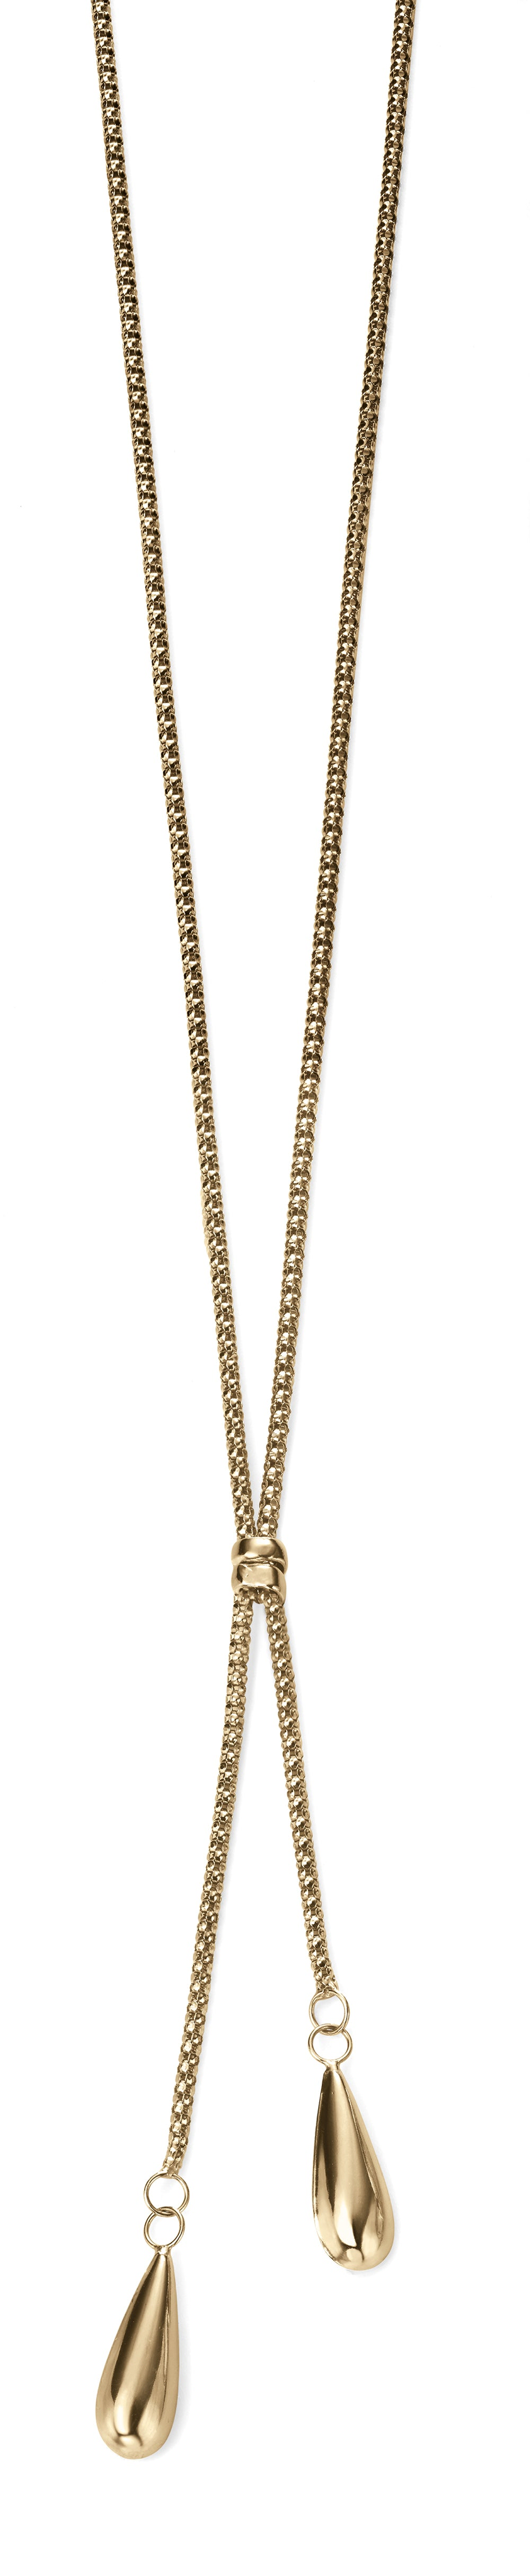 9ct Yellow Gold Double Teardrop Necklace